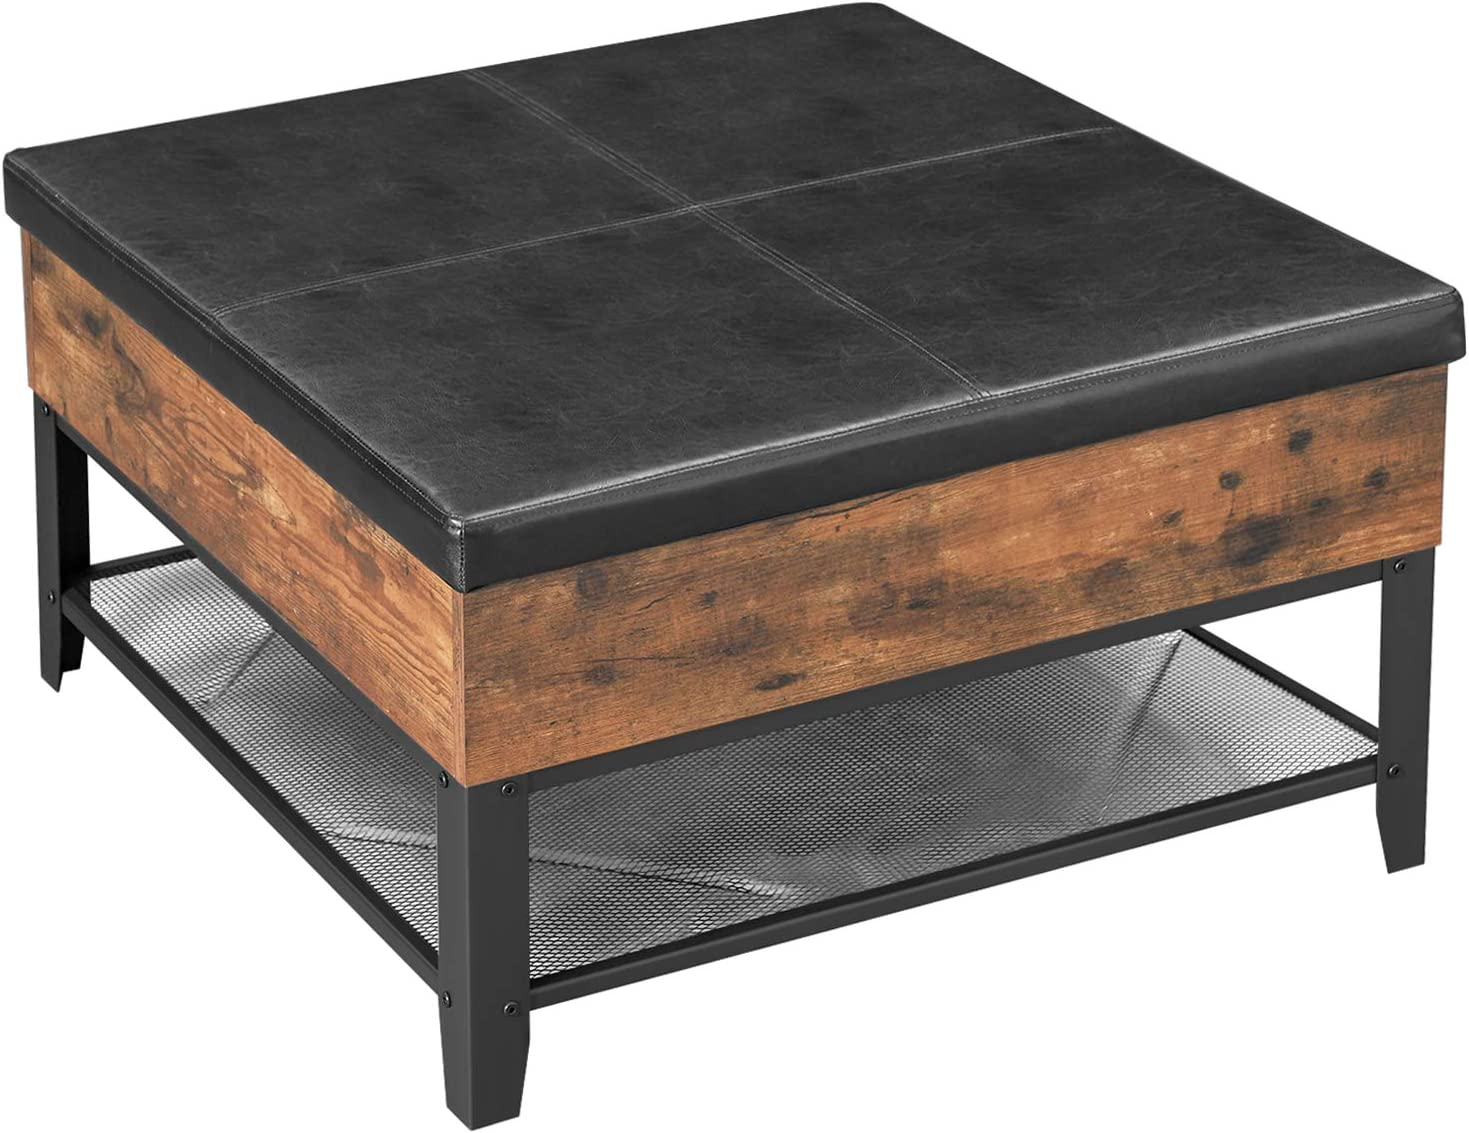 Amazon Com Vasagle Copadion Ottoman Coffee Table Square Coffee Table With Storage For Living Room Metal And Padded Synthetic Leather Industrial Style Rustic Brown Ulct77bx Kitchen Dining